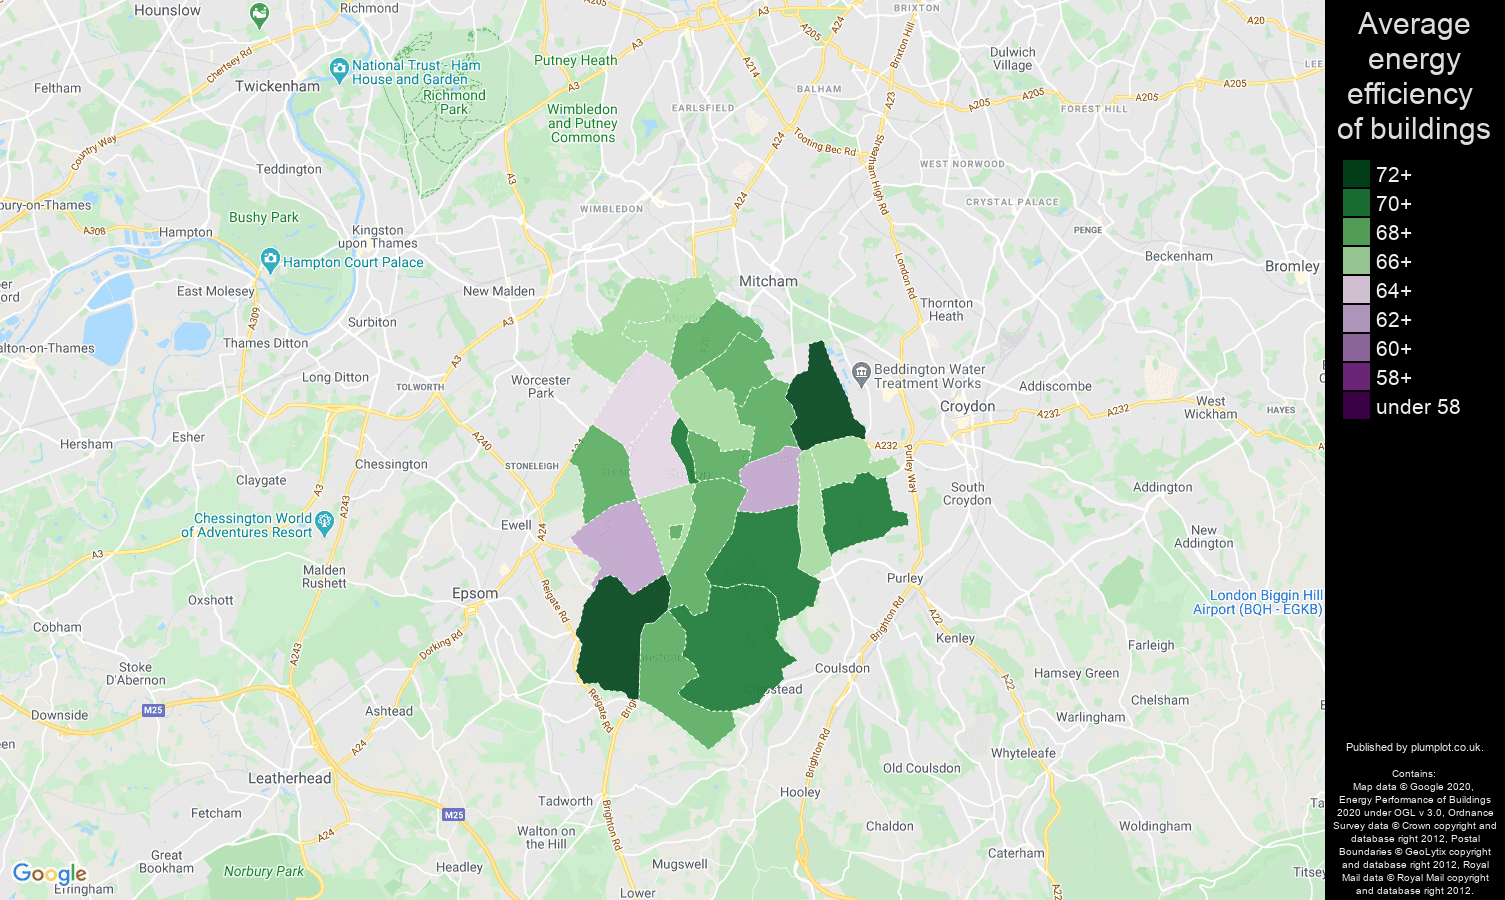 Sutton map of energy efficiency of flats